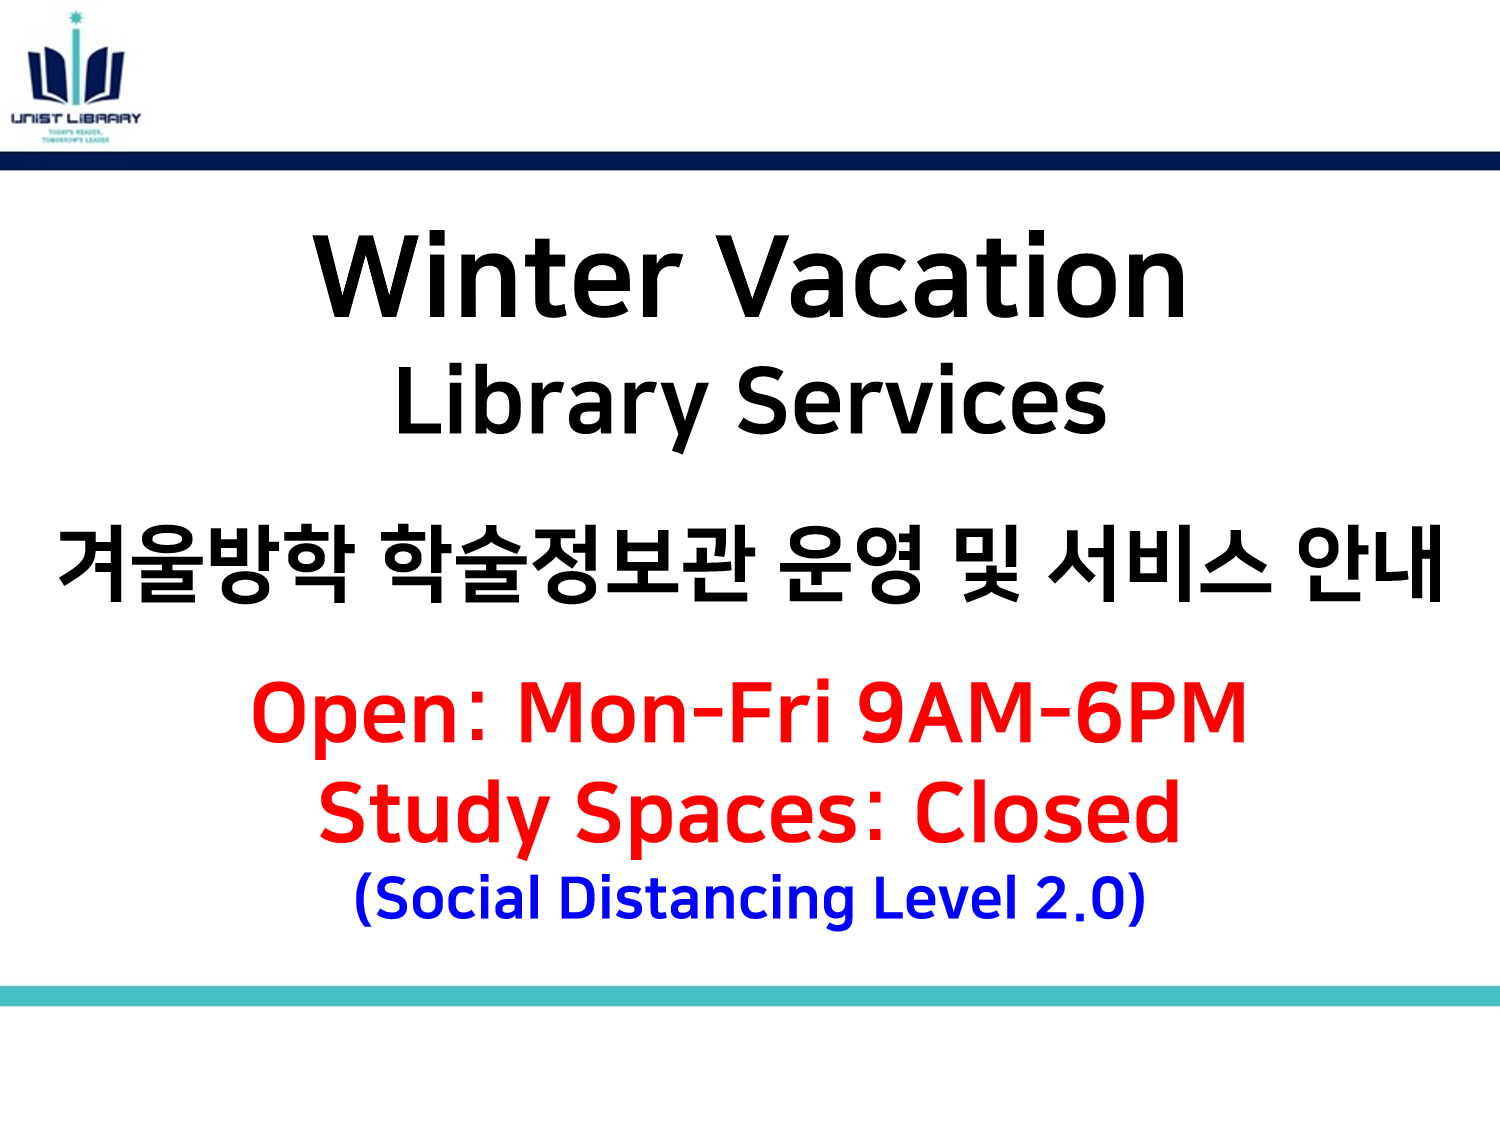 Library Services: Winter Vacation